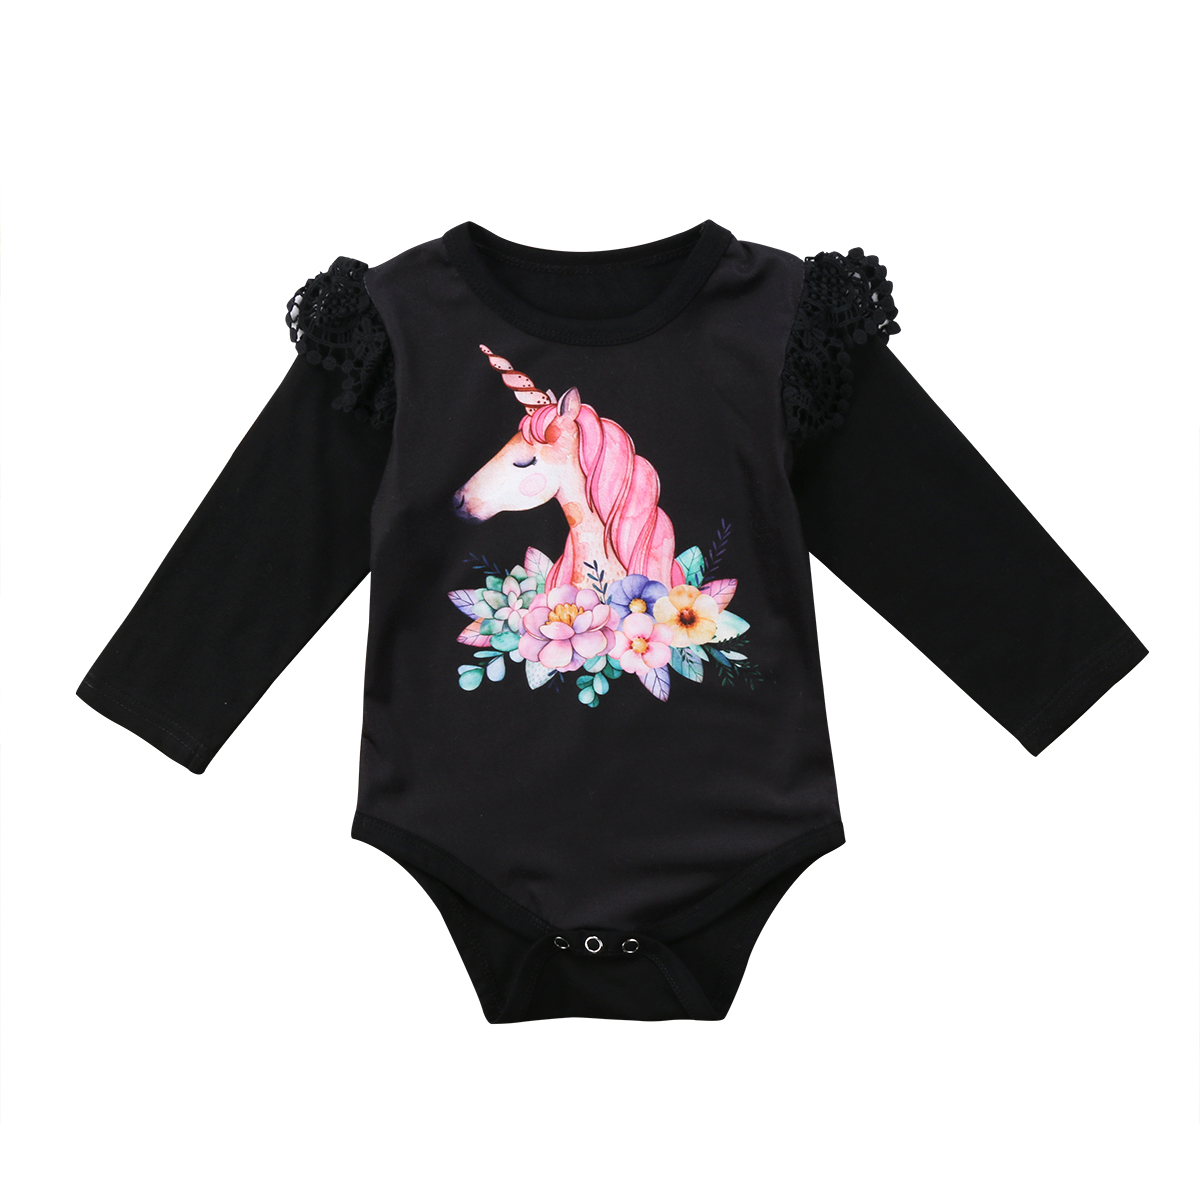 Unicorn baby girls clothes Infant Baby Girls Long Sleeve Unicorn   Romper   Jumpsuit babies body suits 2 colors black white